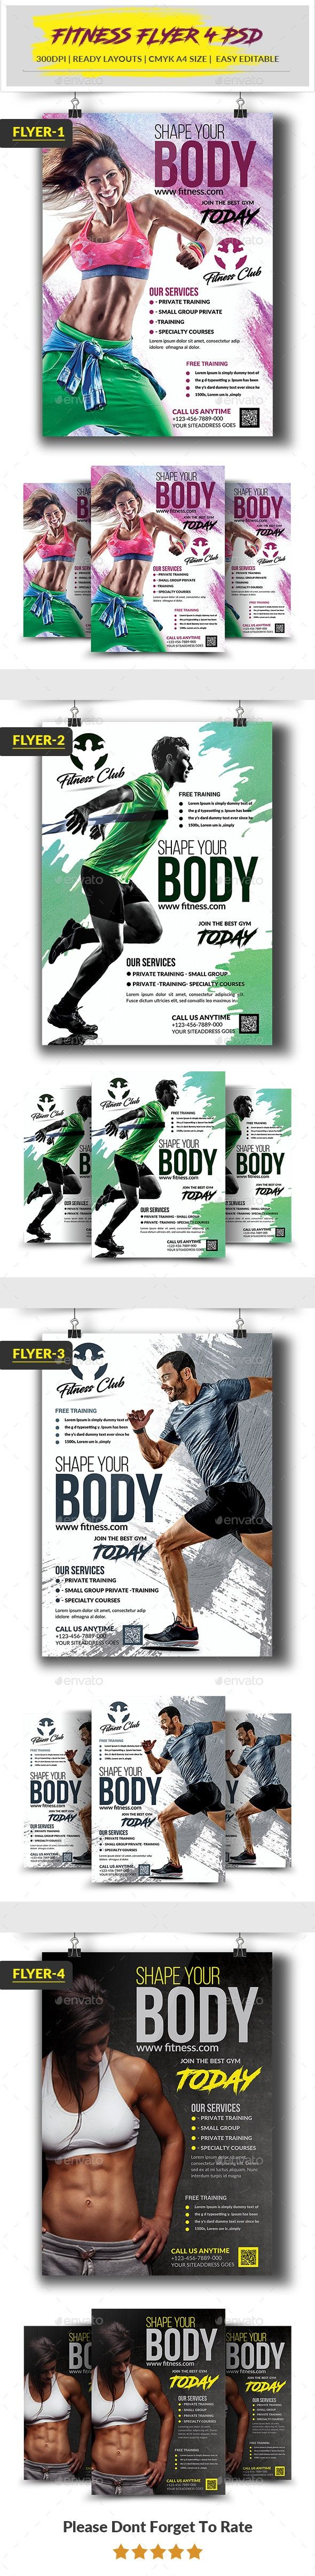 Fitness Flyer #AD #Fitness, #spon, #Flyer